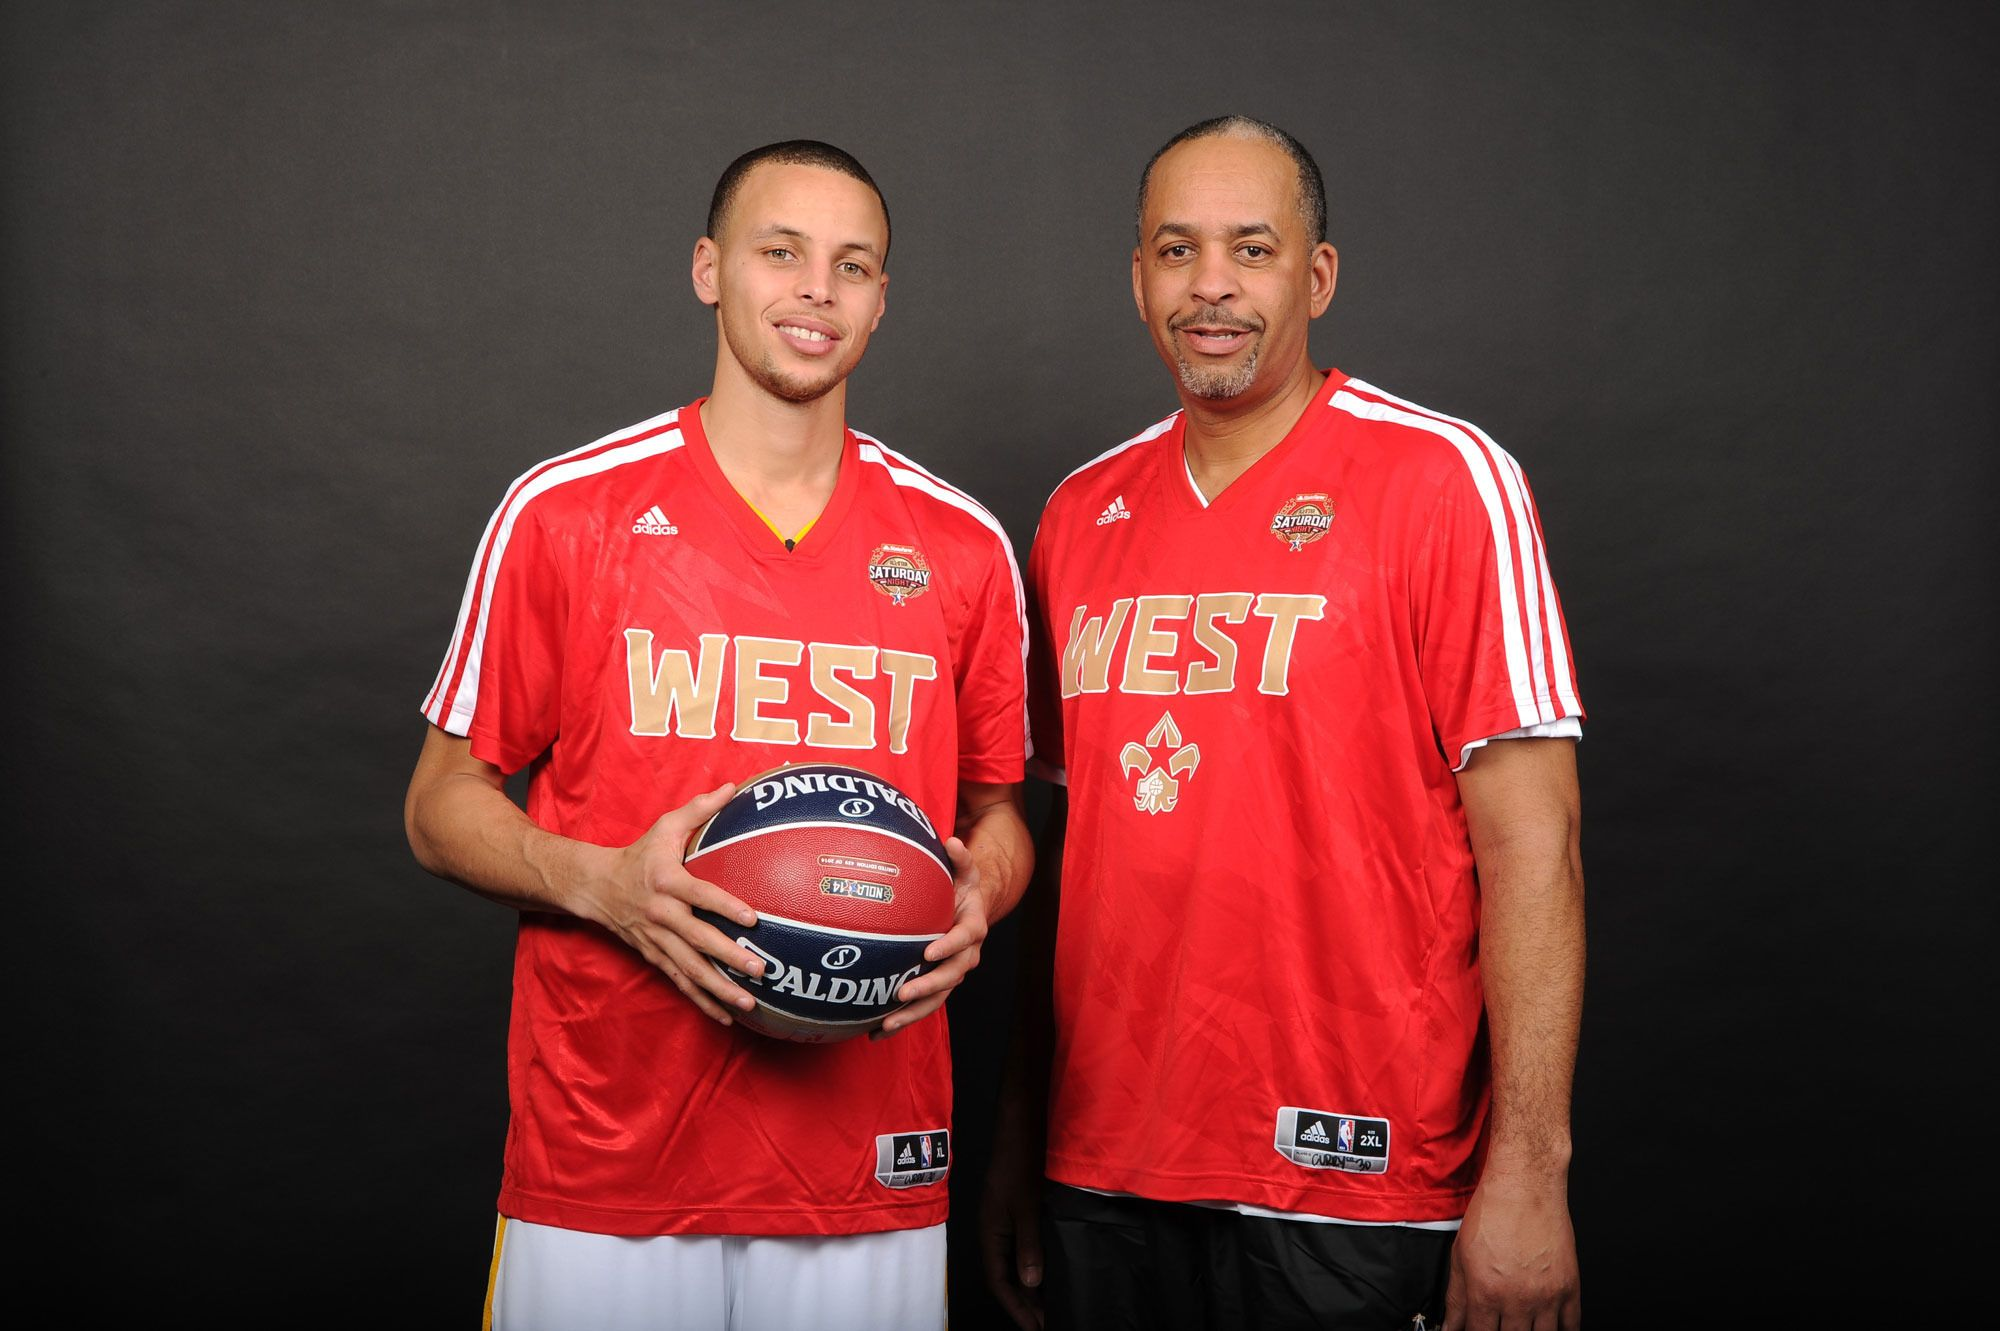 Best fatherson combinations in sports history Dell and